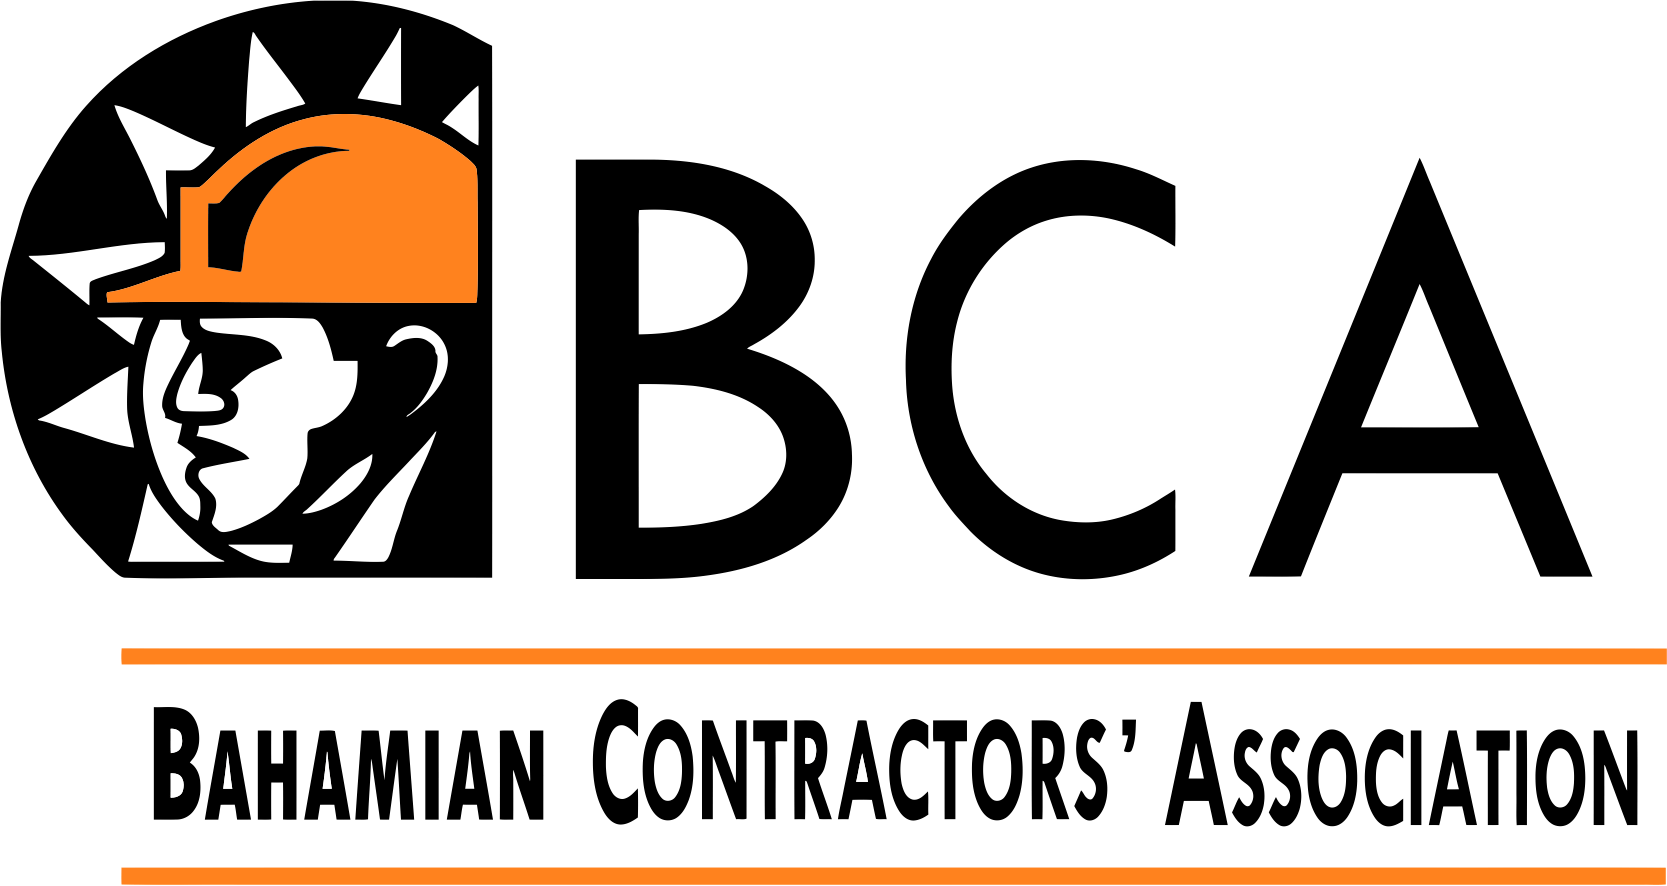 BCA pushes for 1,000 intl. certifications by year-end